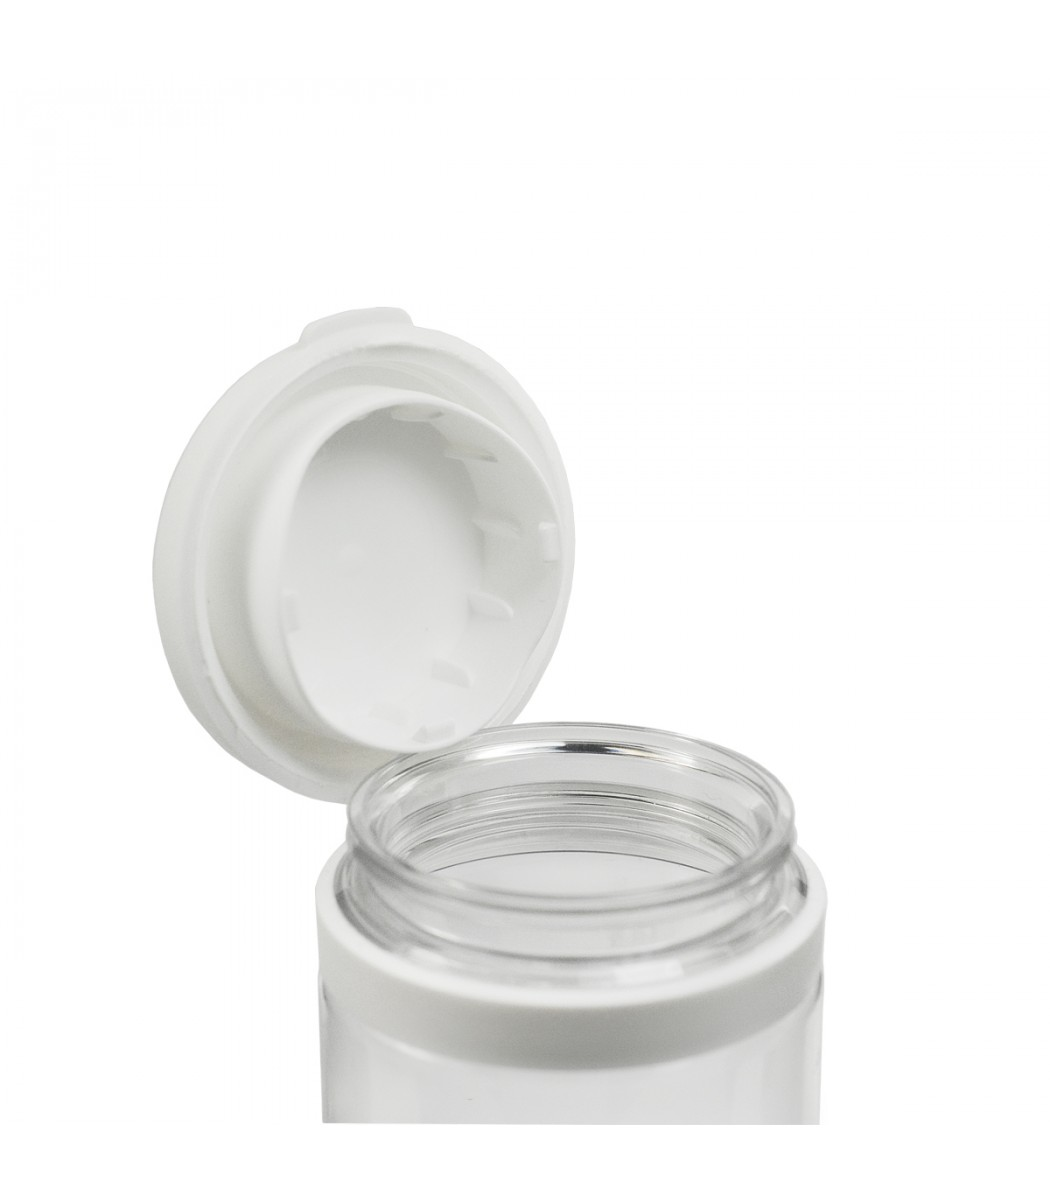 100ml Clear Plastic Pill Jar With Hinged Lid